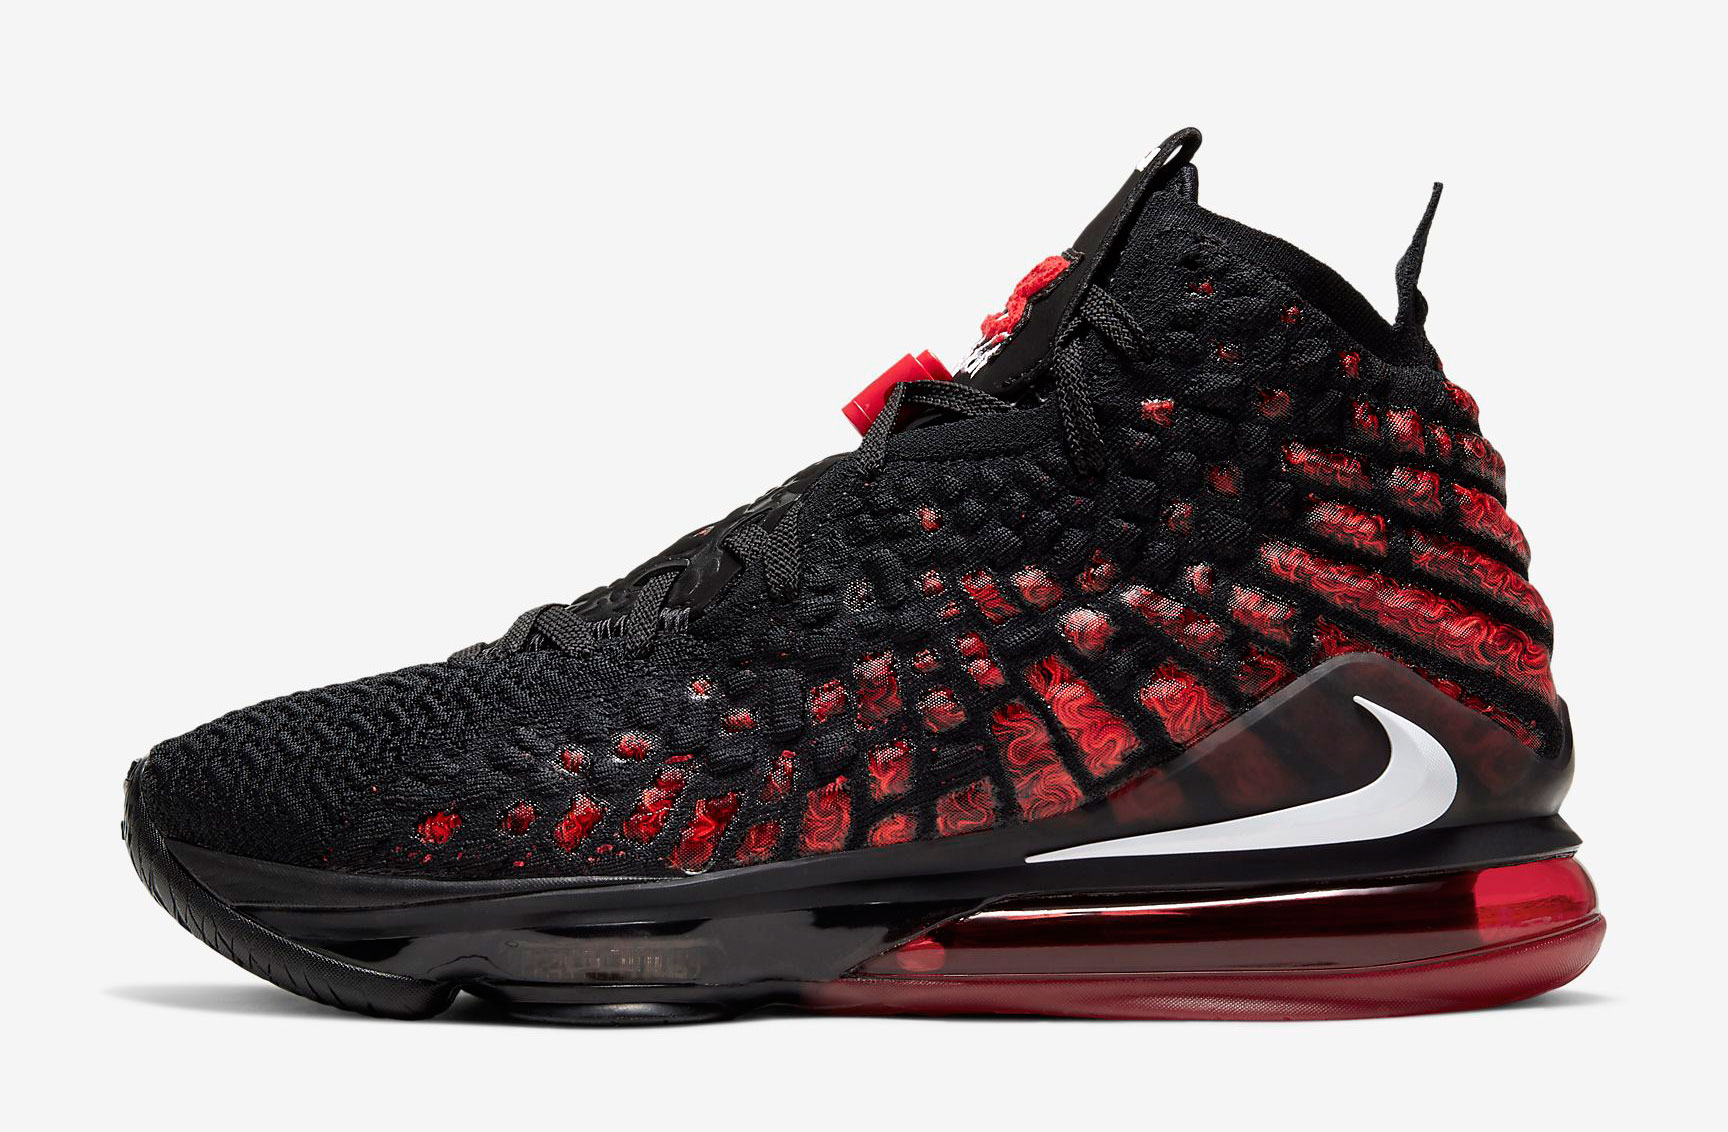 nike-lebron-17-black-red-infrared-available-now